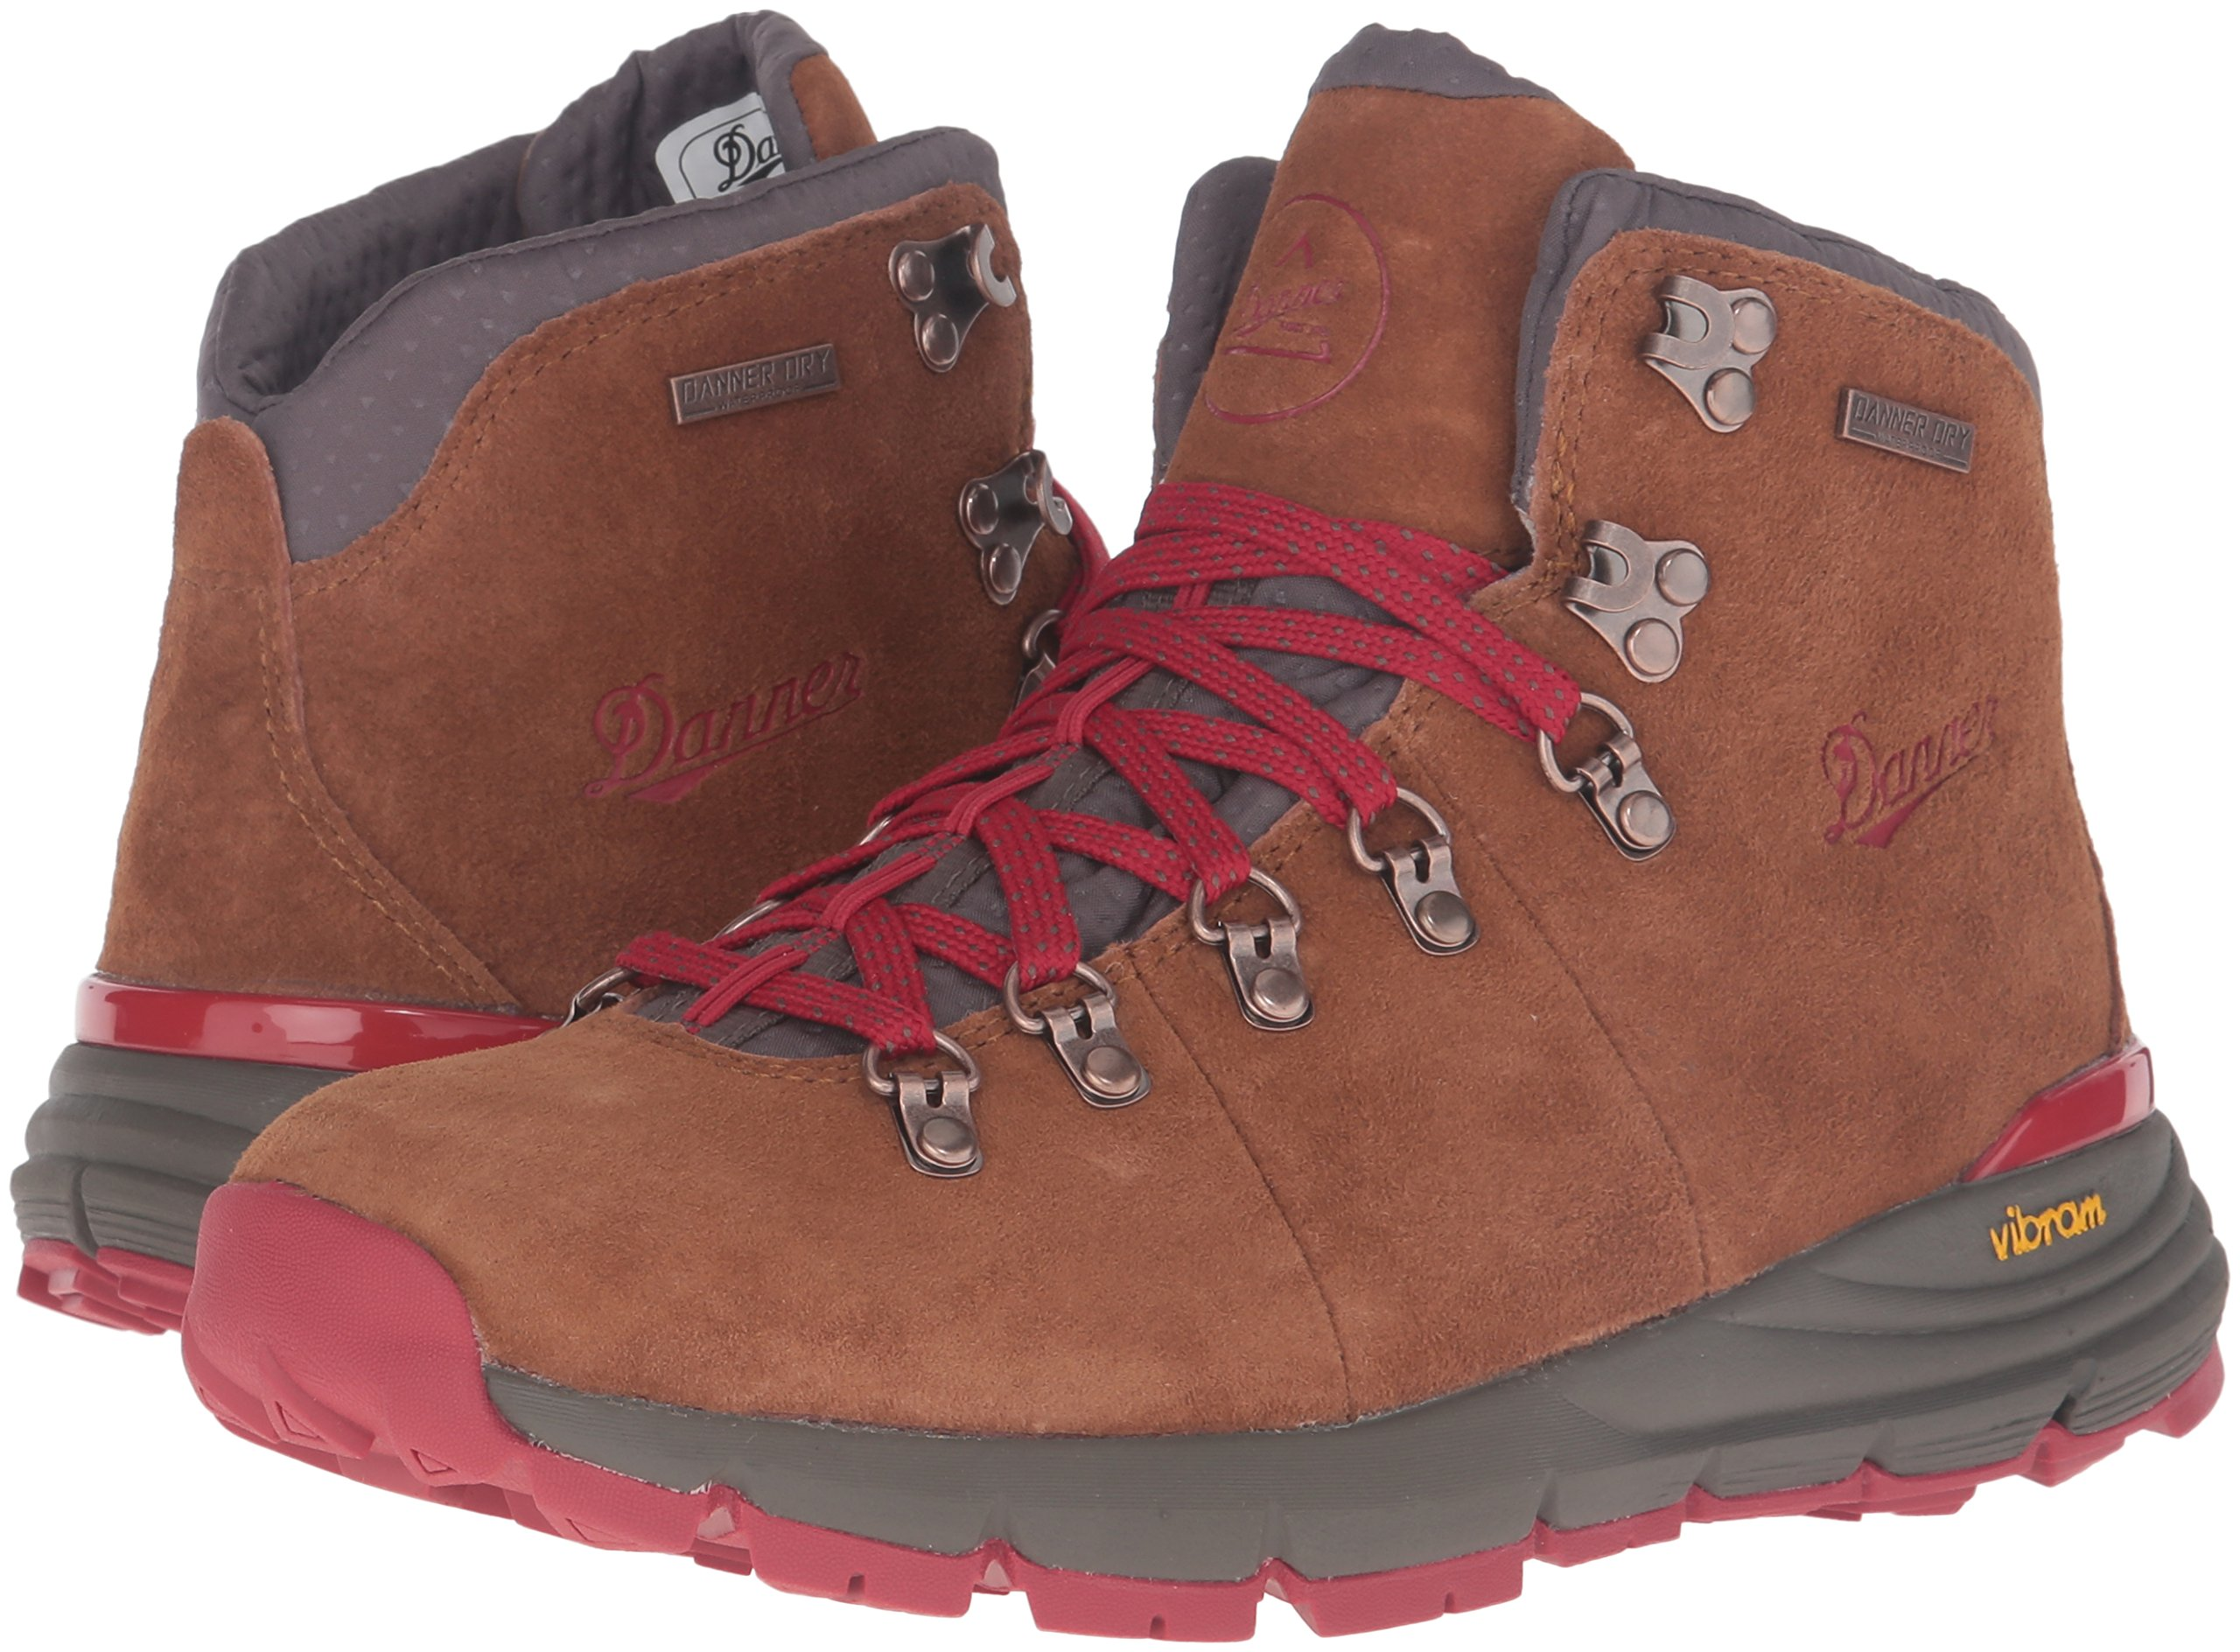 Danner Women's Mountain 600 4.5'' Hiking Boot, Brown/Red, 8.5 M US by Danner (Image #6)